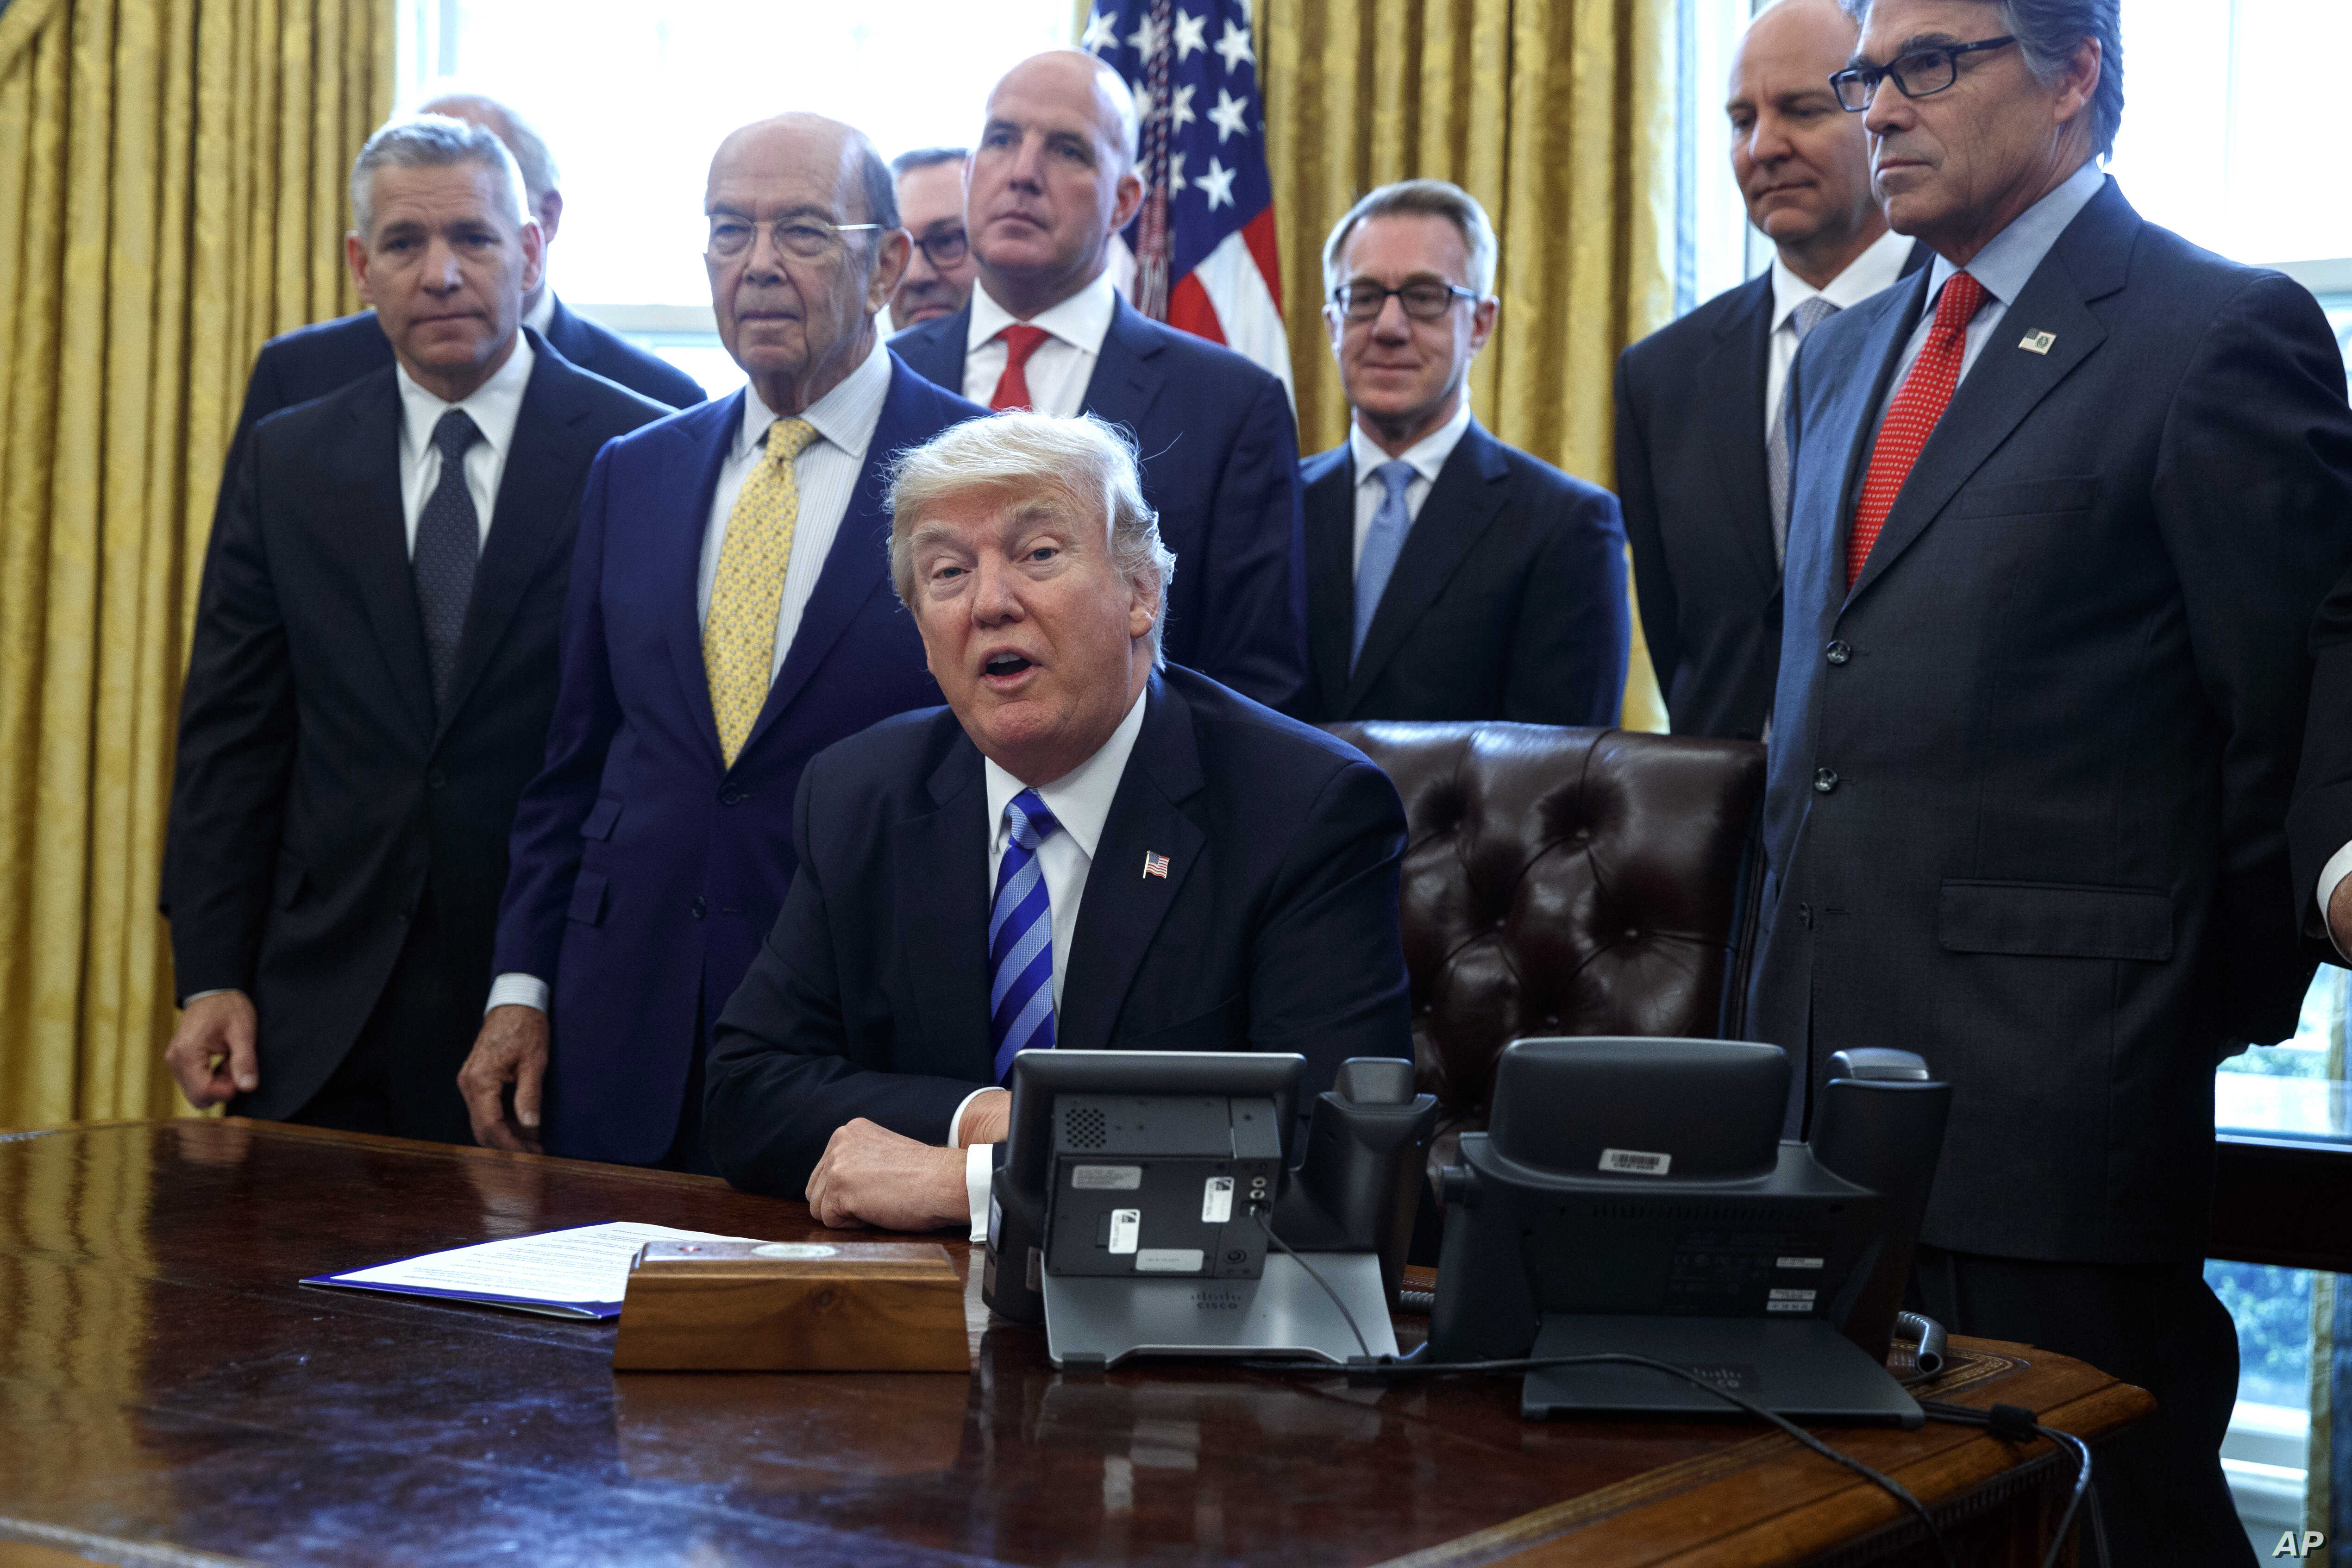 Trump Wields Presidential Power on Pipeline, Energy Projects | Voice